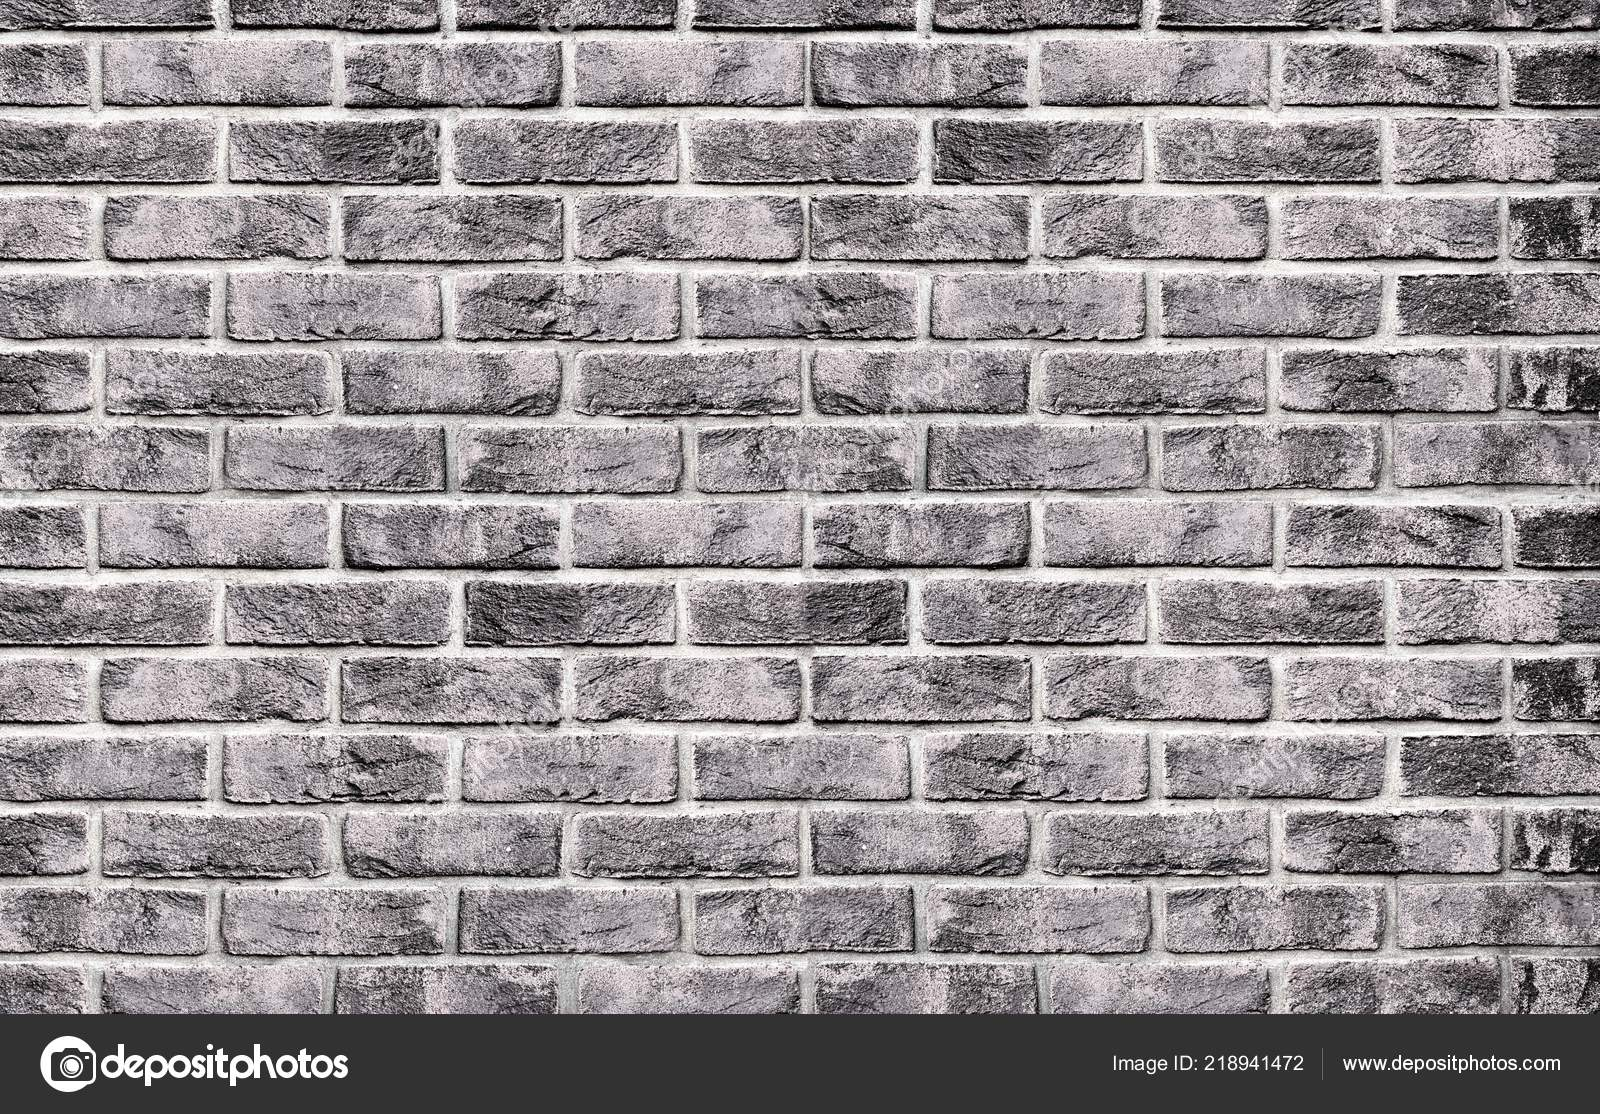 Dollzis: Black And White Brick Wall Background Hd